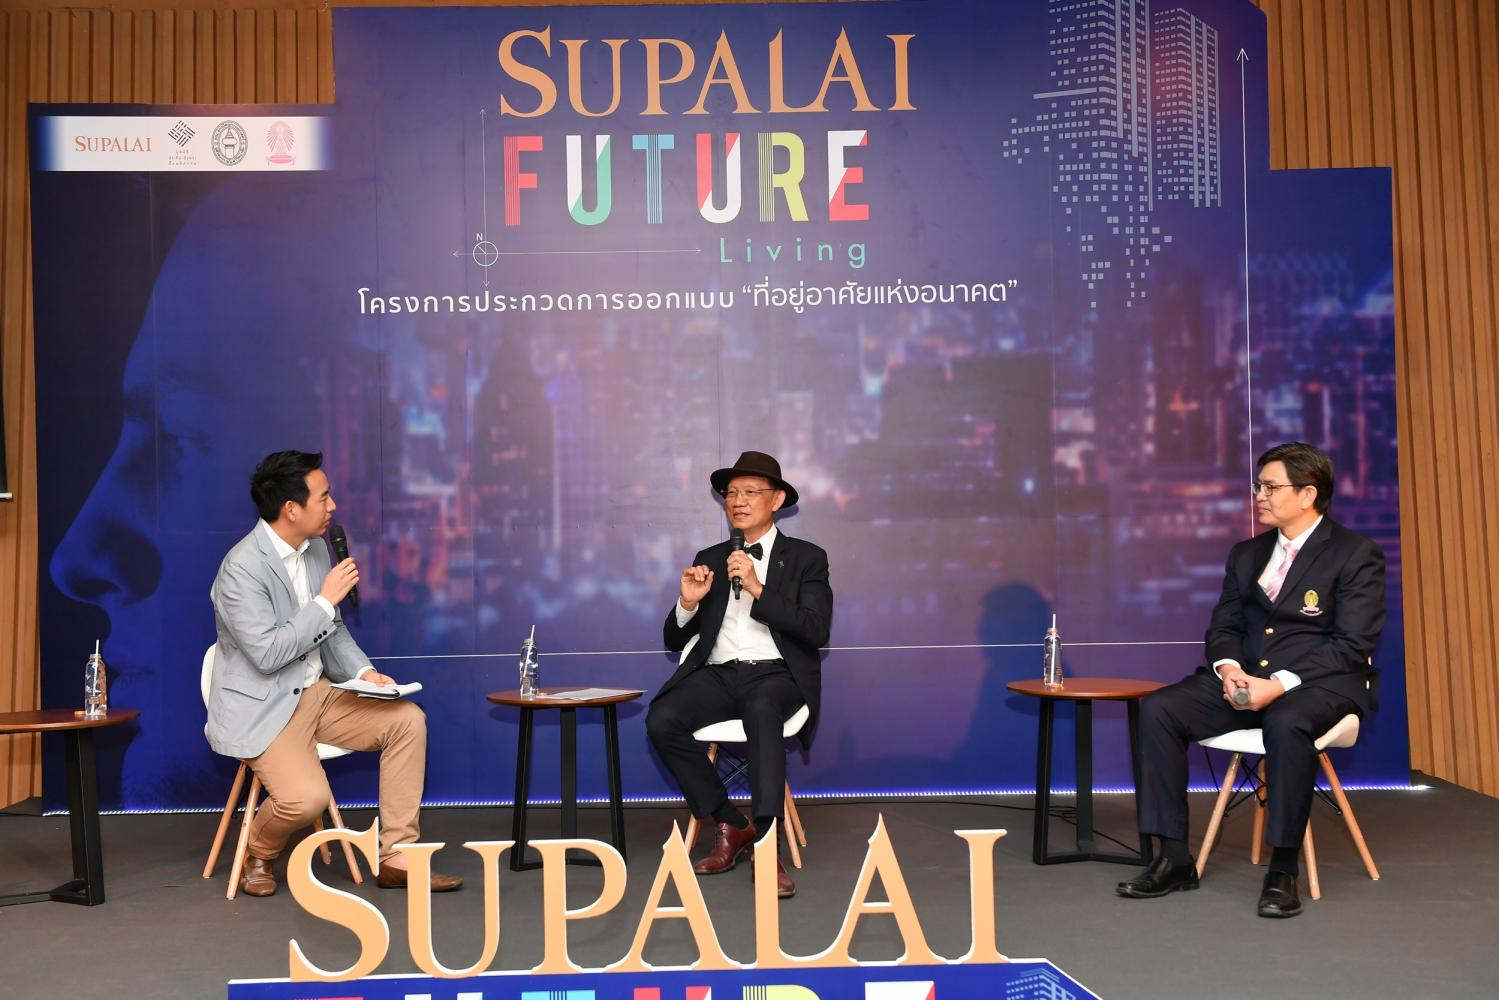 Supalai looks to provincial prospects